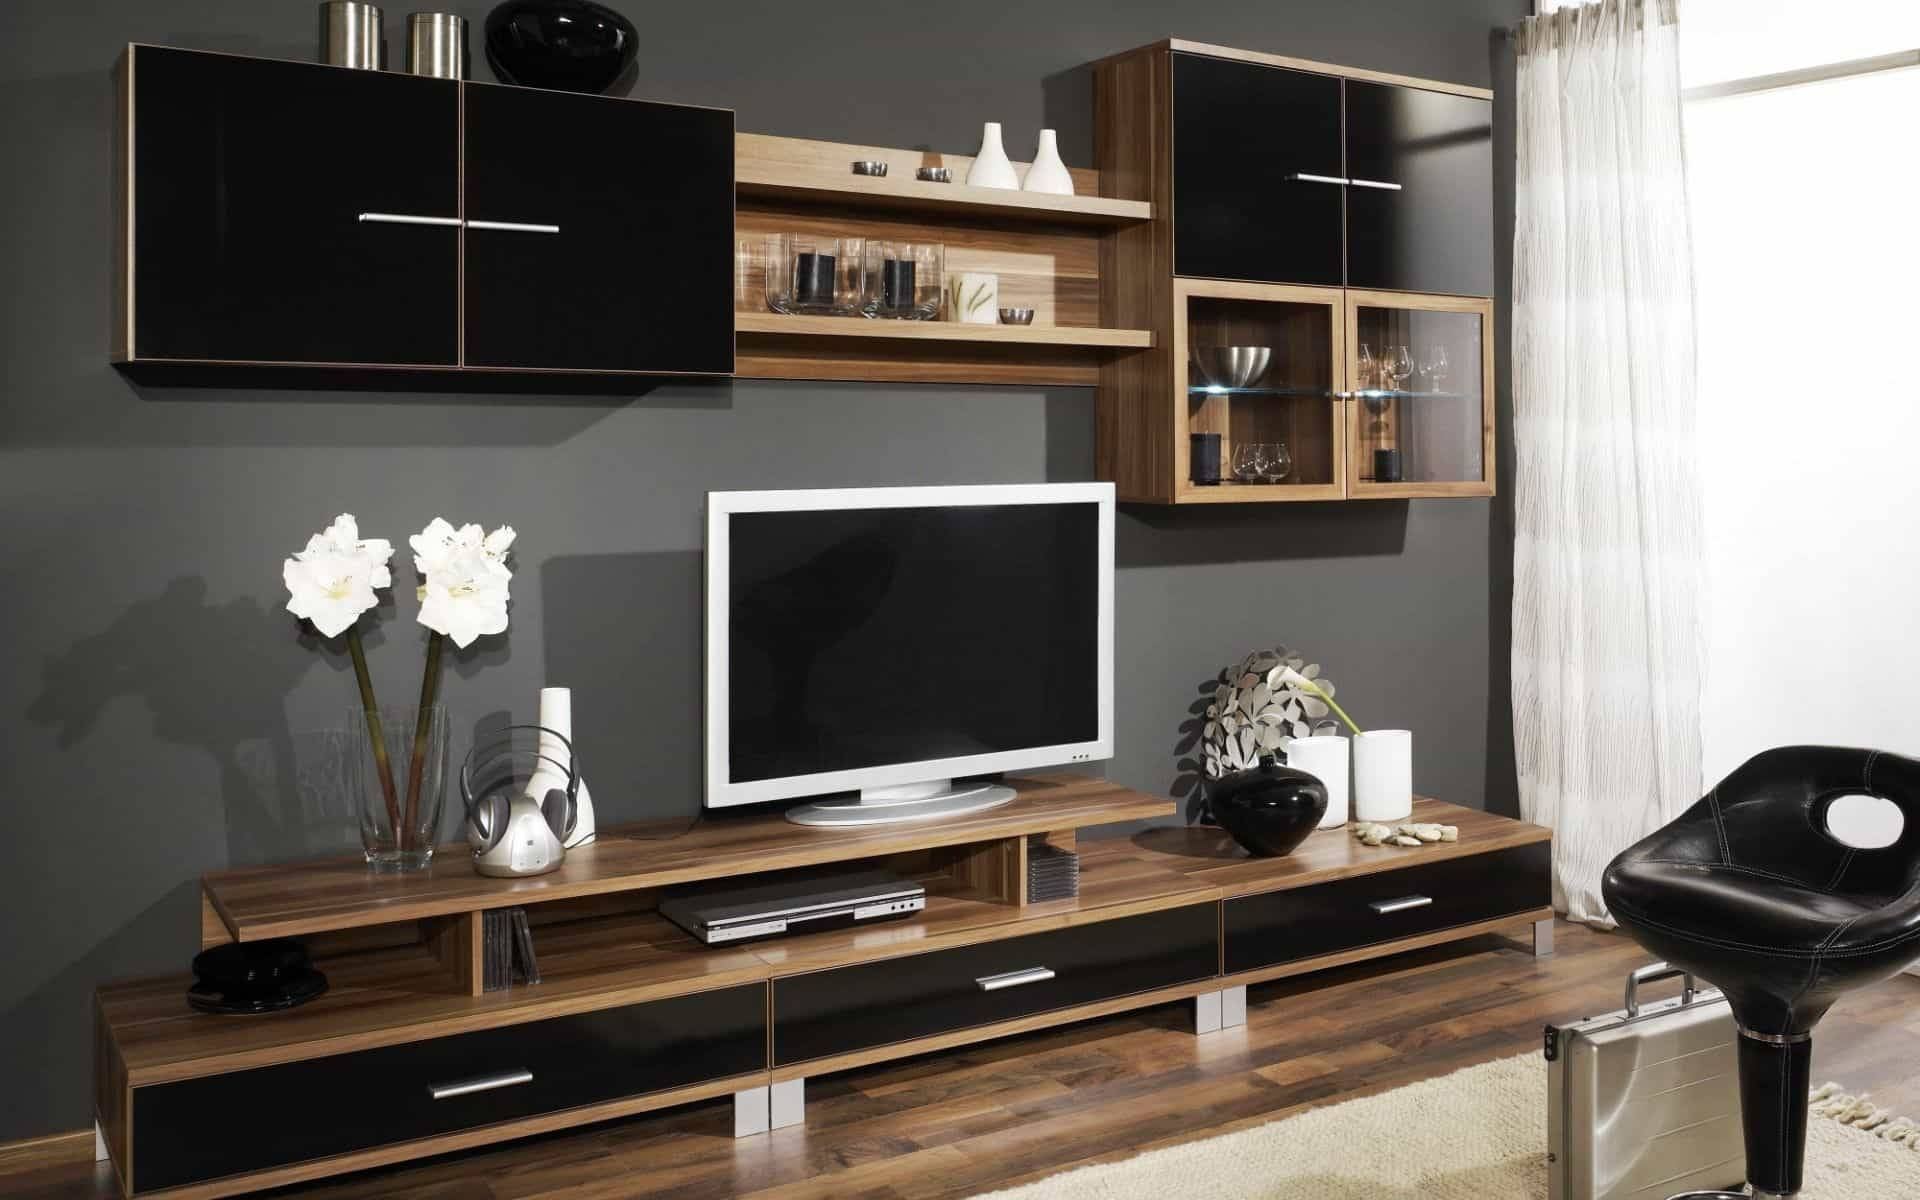 Modern Tv Stand With Bottom Drawers - Useful And Stylish Tv Stand intended for Stylish Tv Stands (Image 5 of 15)